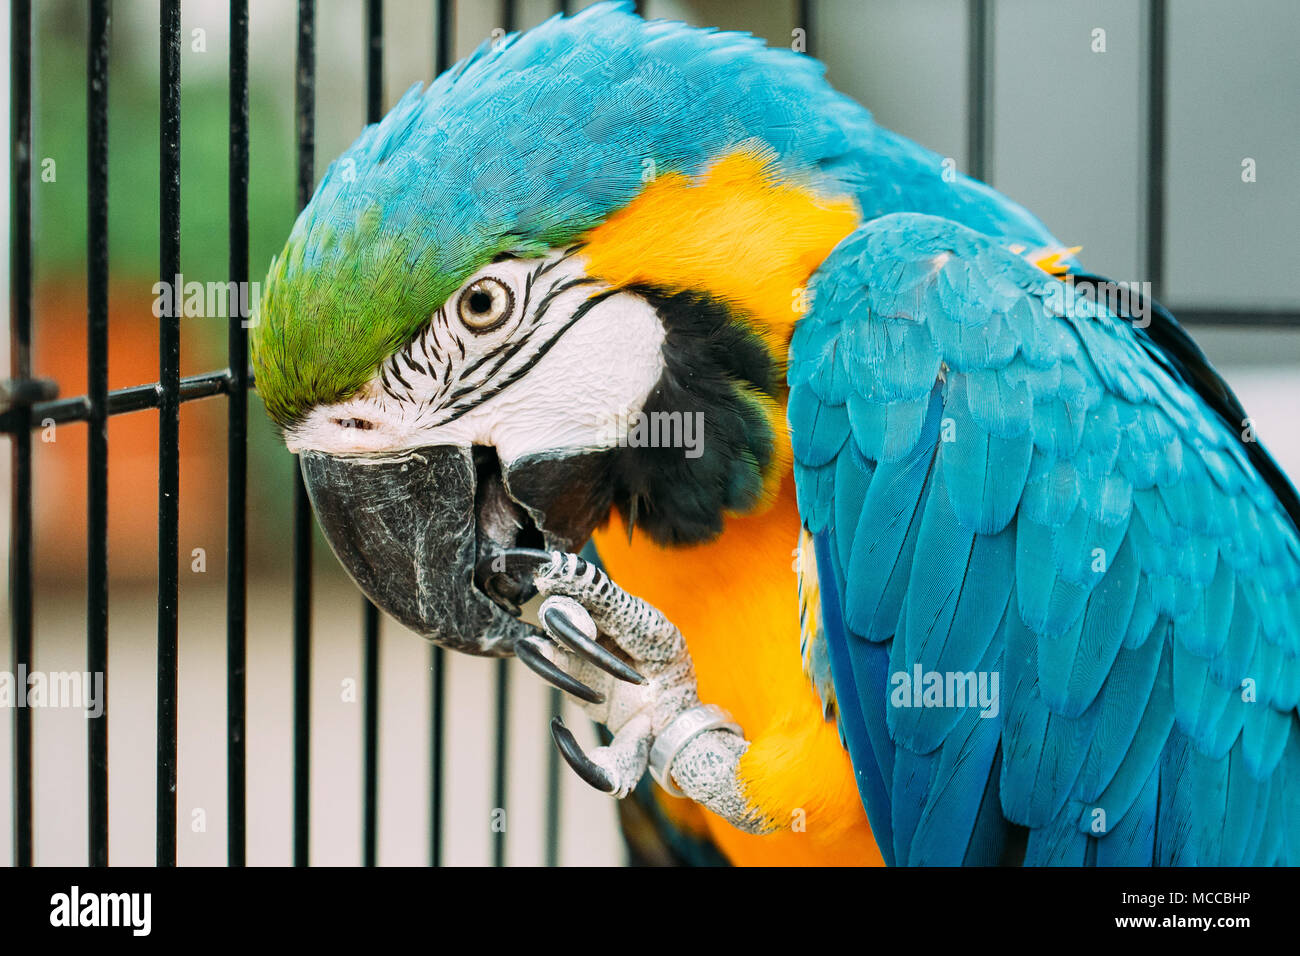 Blue-and-yellow Macaw Also Known As The Blue-and-gold Macaw In Zoo. Wild Bird In Cage. Stock Photo